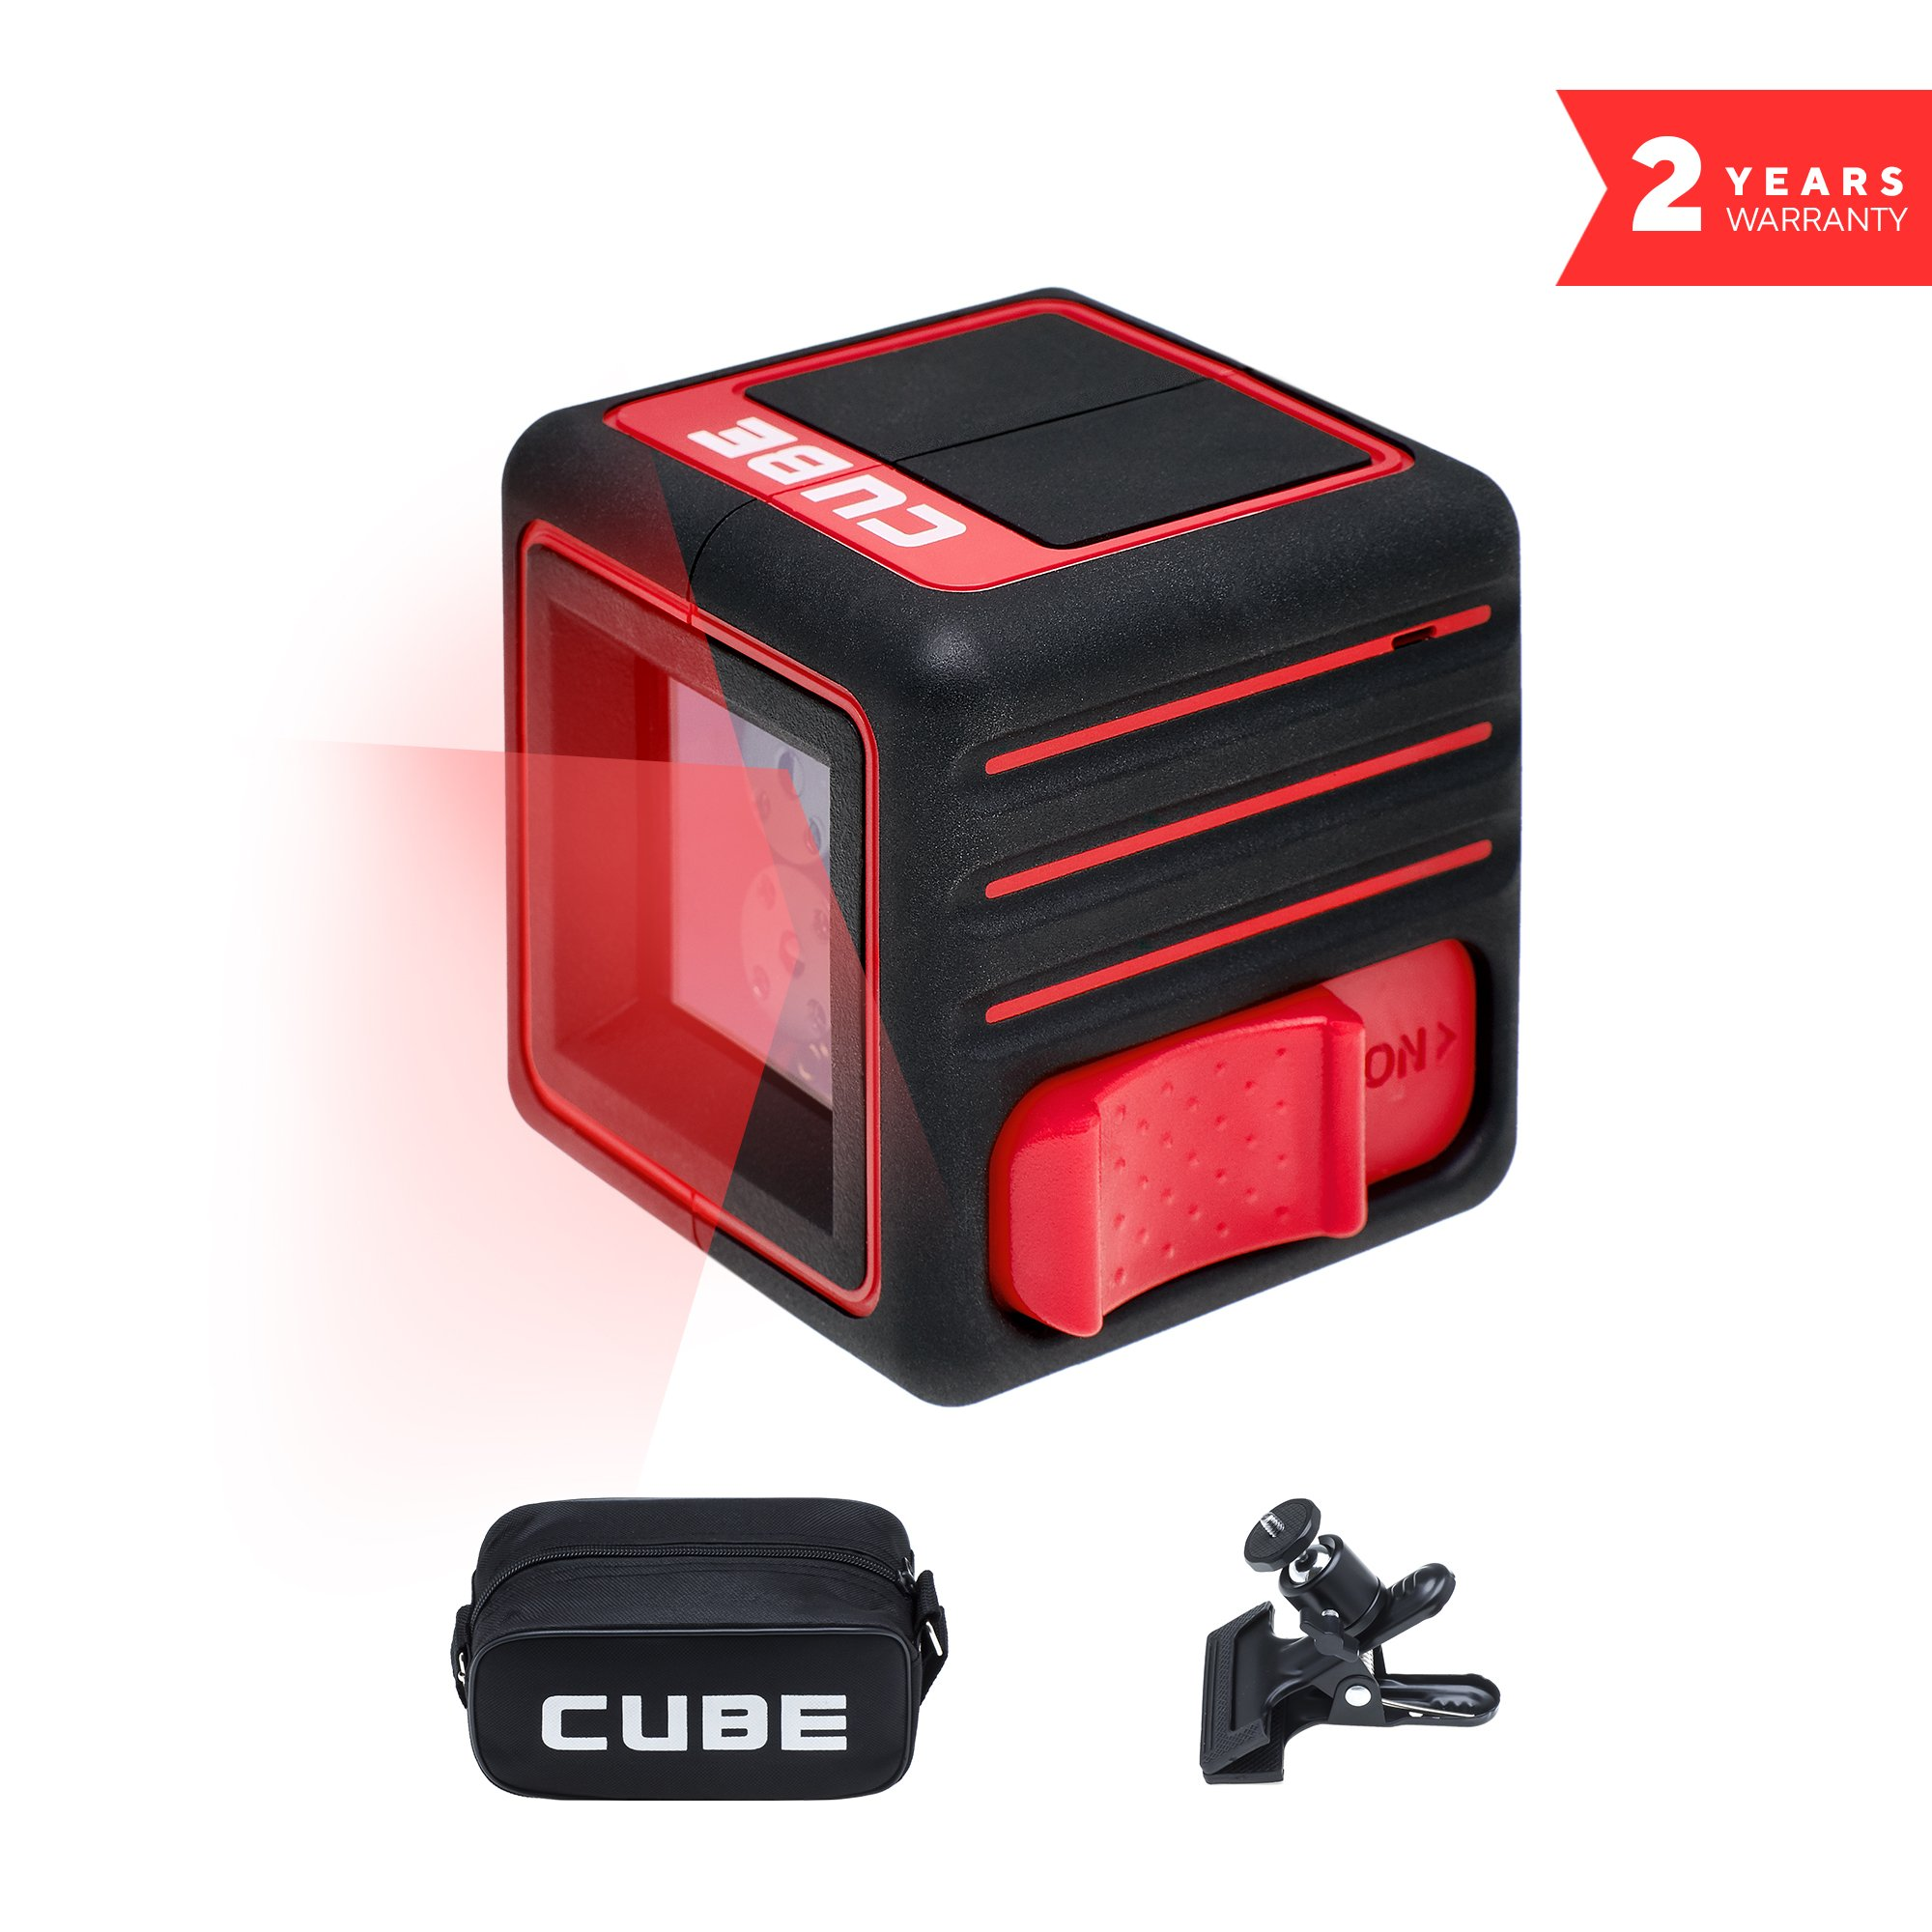 ADA Cube Home Edition, Laser Level, Crossline Self-Leveling Laser Level Kit, 20 Meters (65 feet). Vertical and Horizontal Lines. with Carrying Pouch, Universal Mount, batteries and user manual A00342